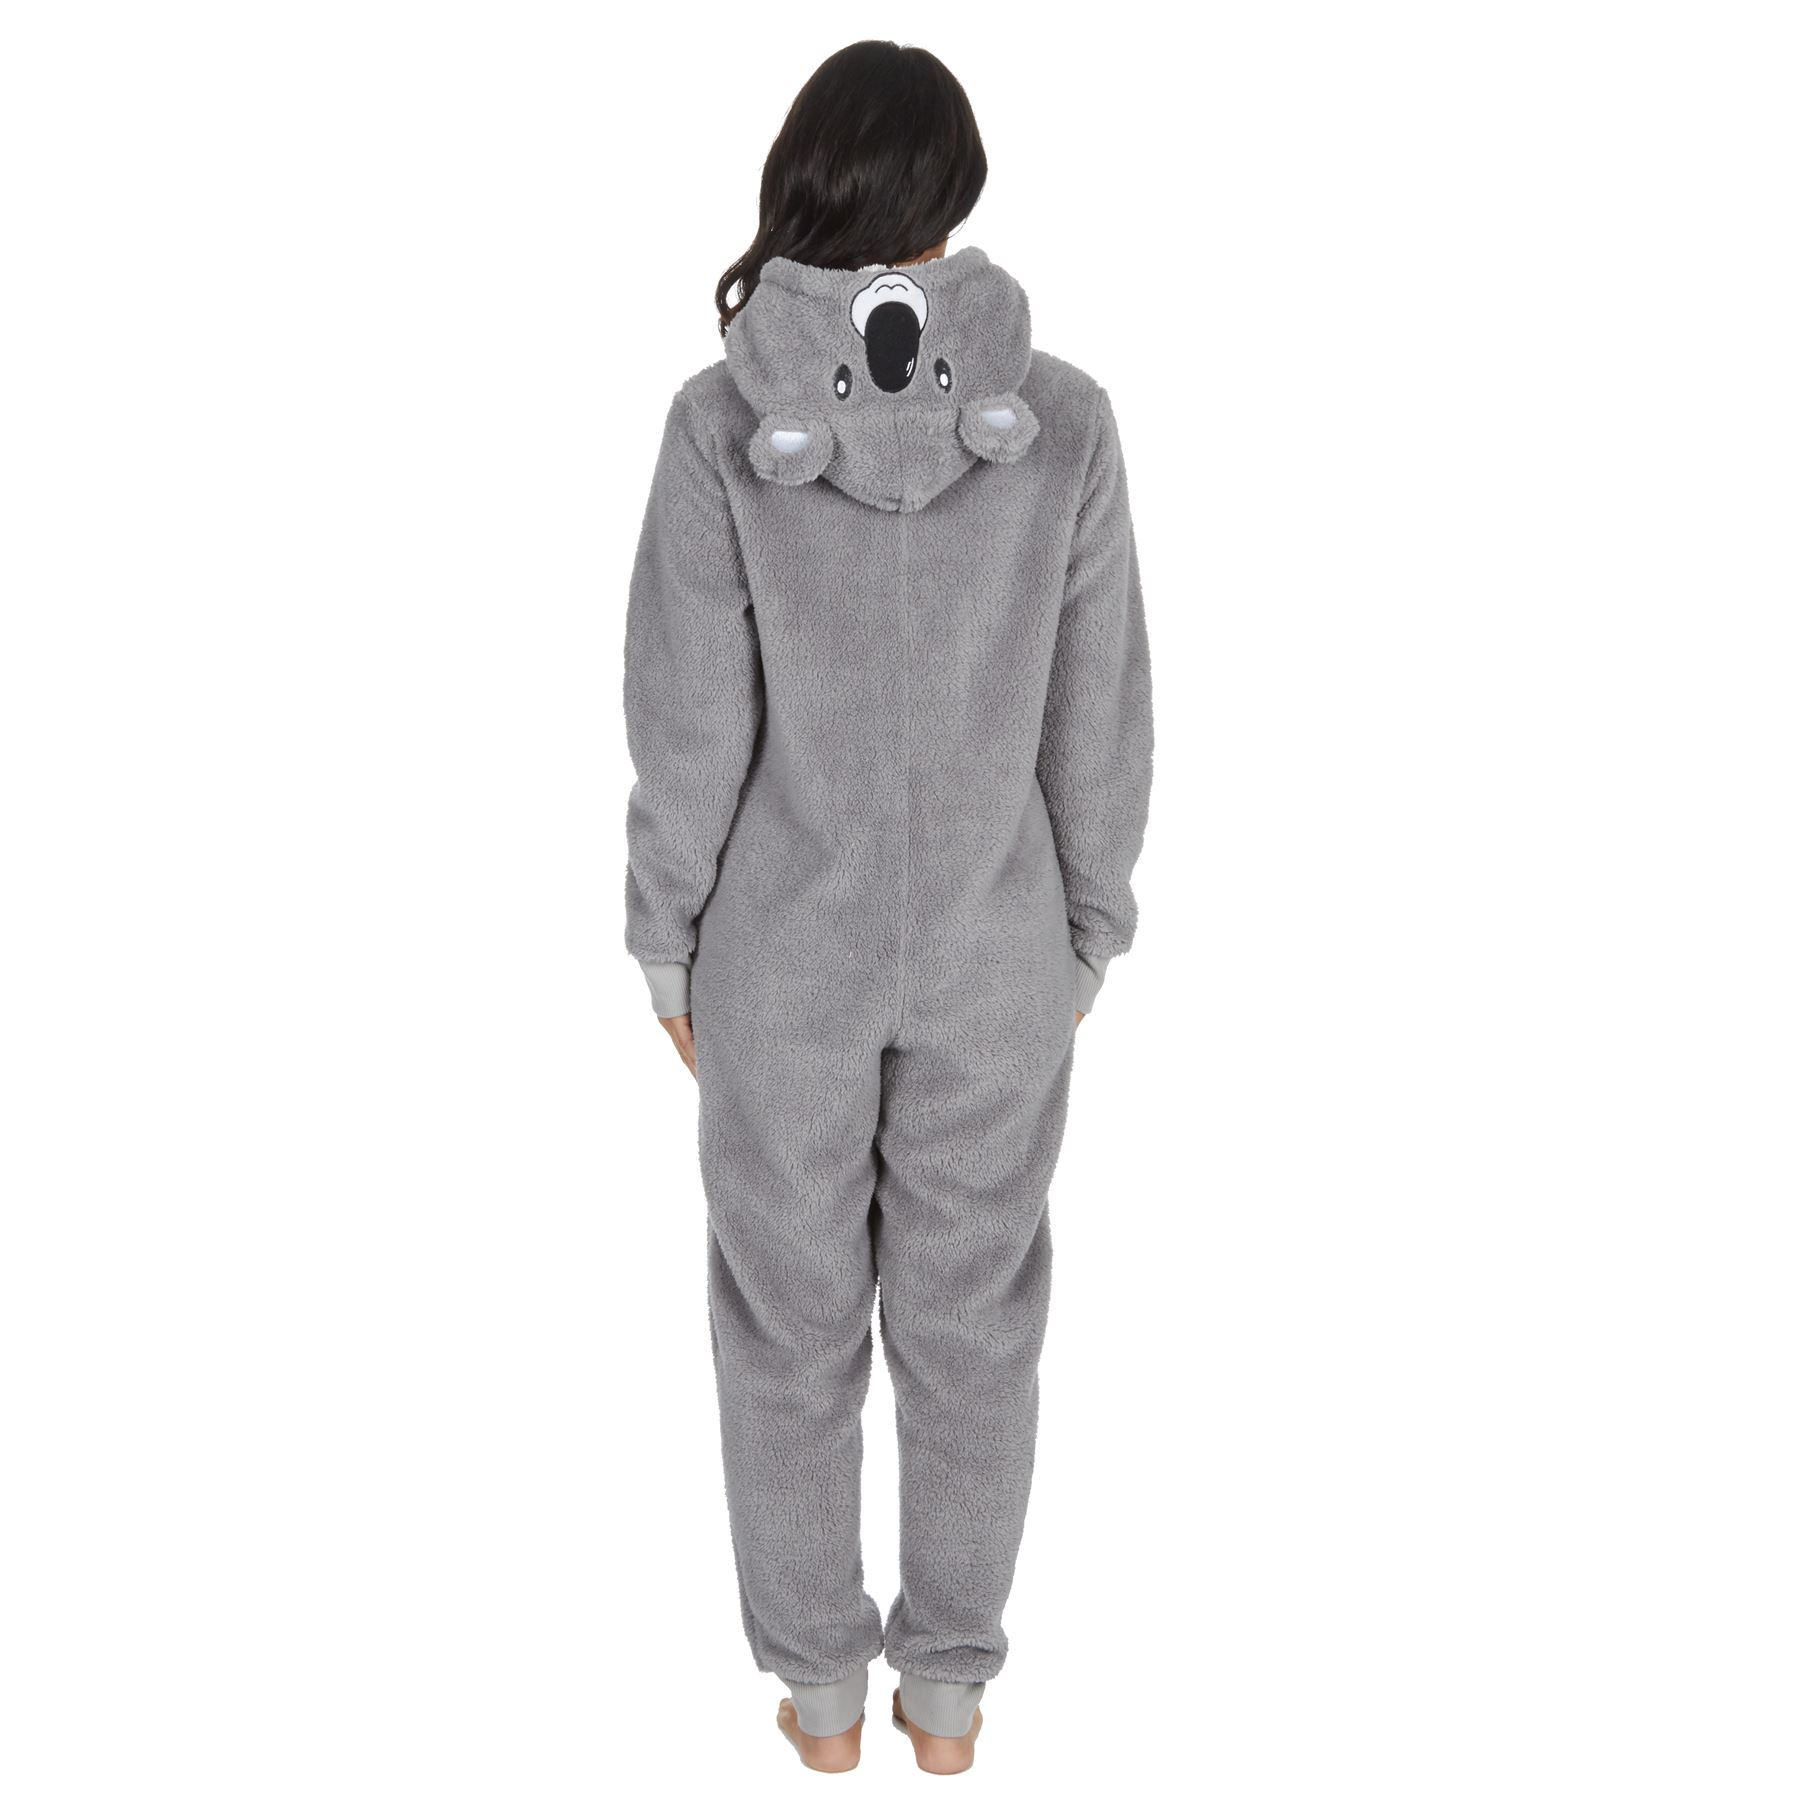 Ladies-Womens-Girls-Fleece-All-In-One-Pyjamas-Outfit-Jumpsuit-Costume-Size-6-18 thumbnail 5